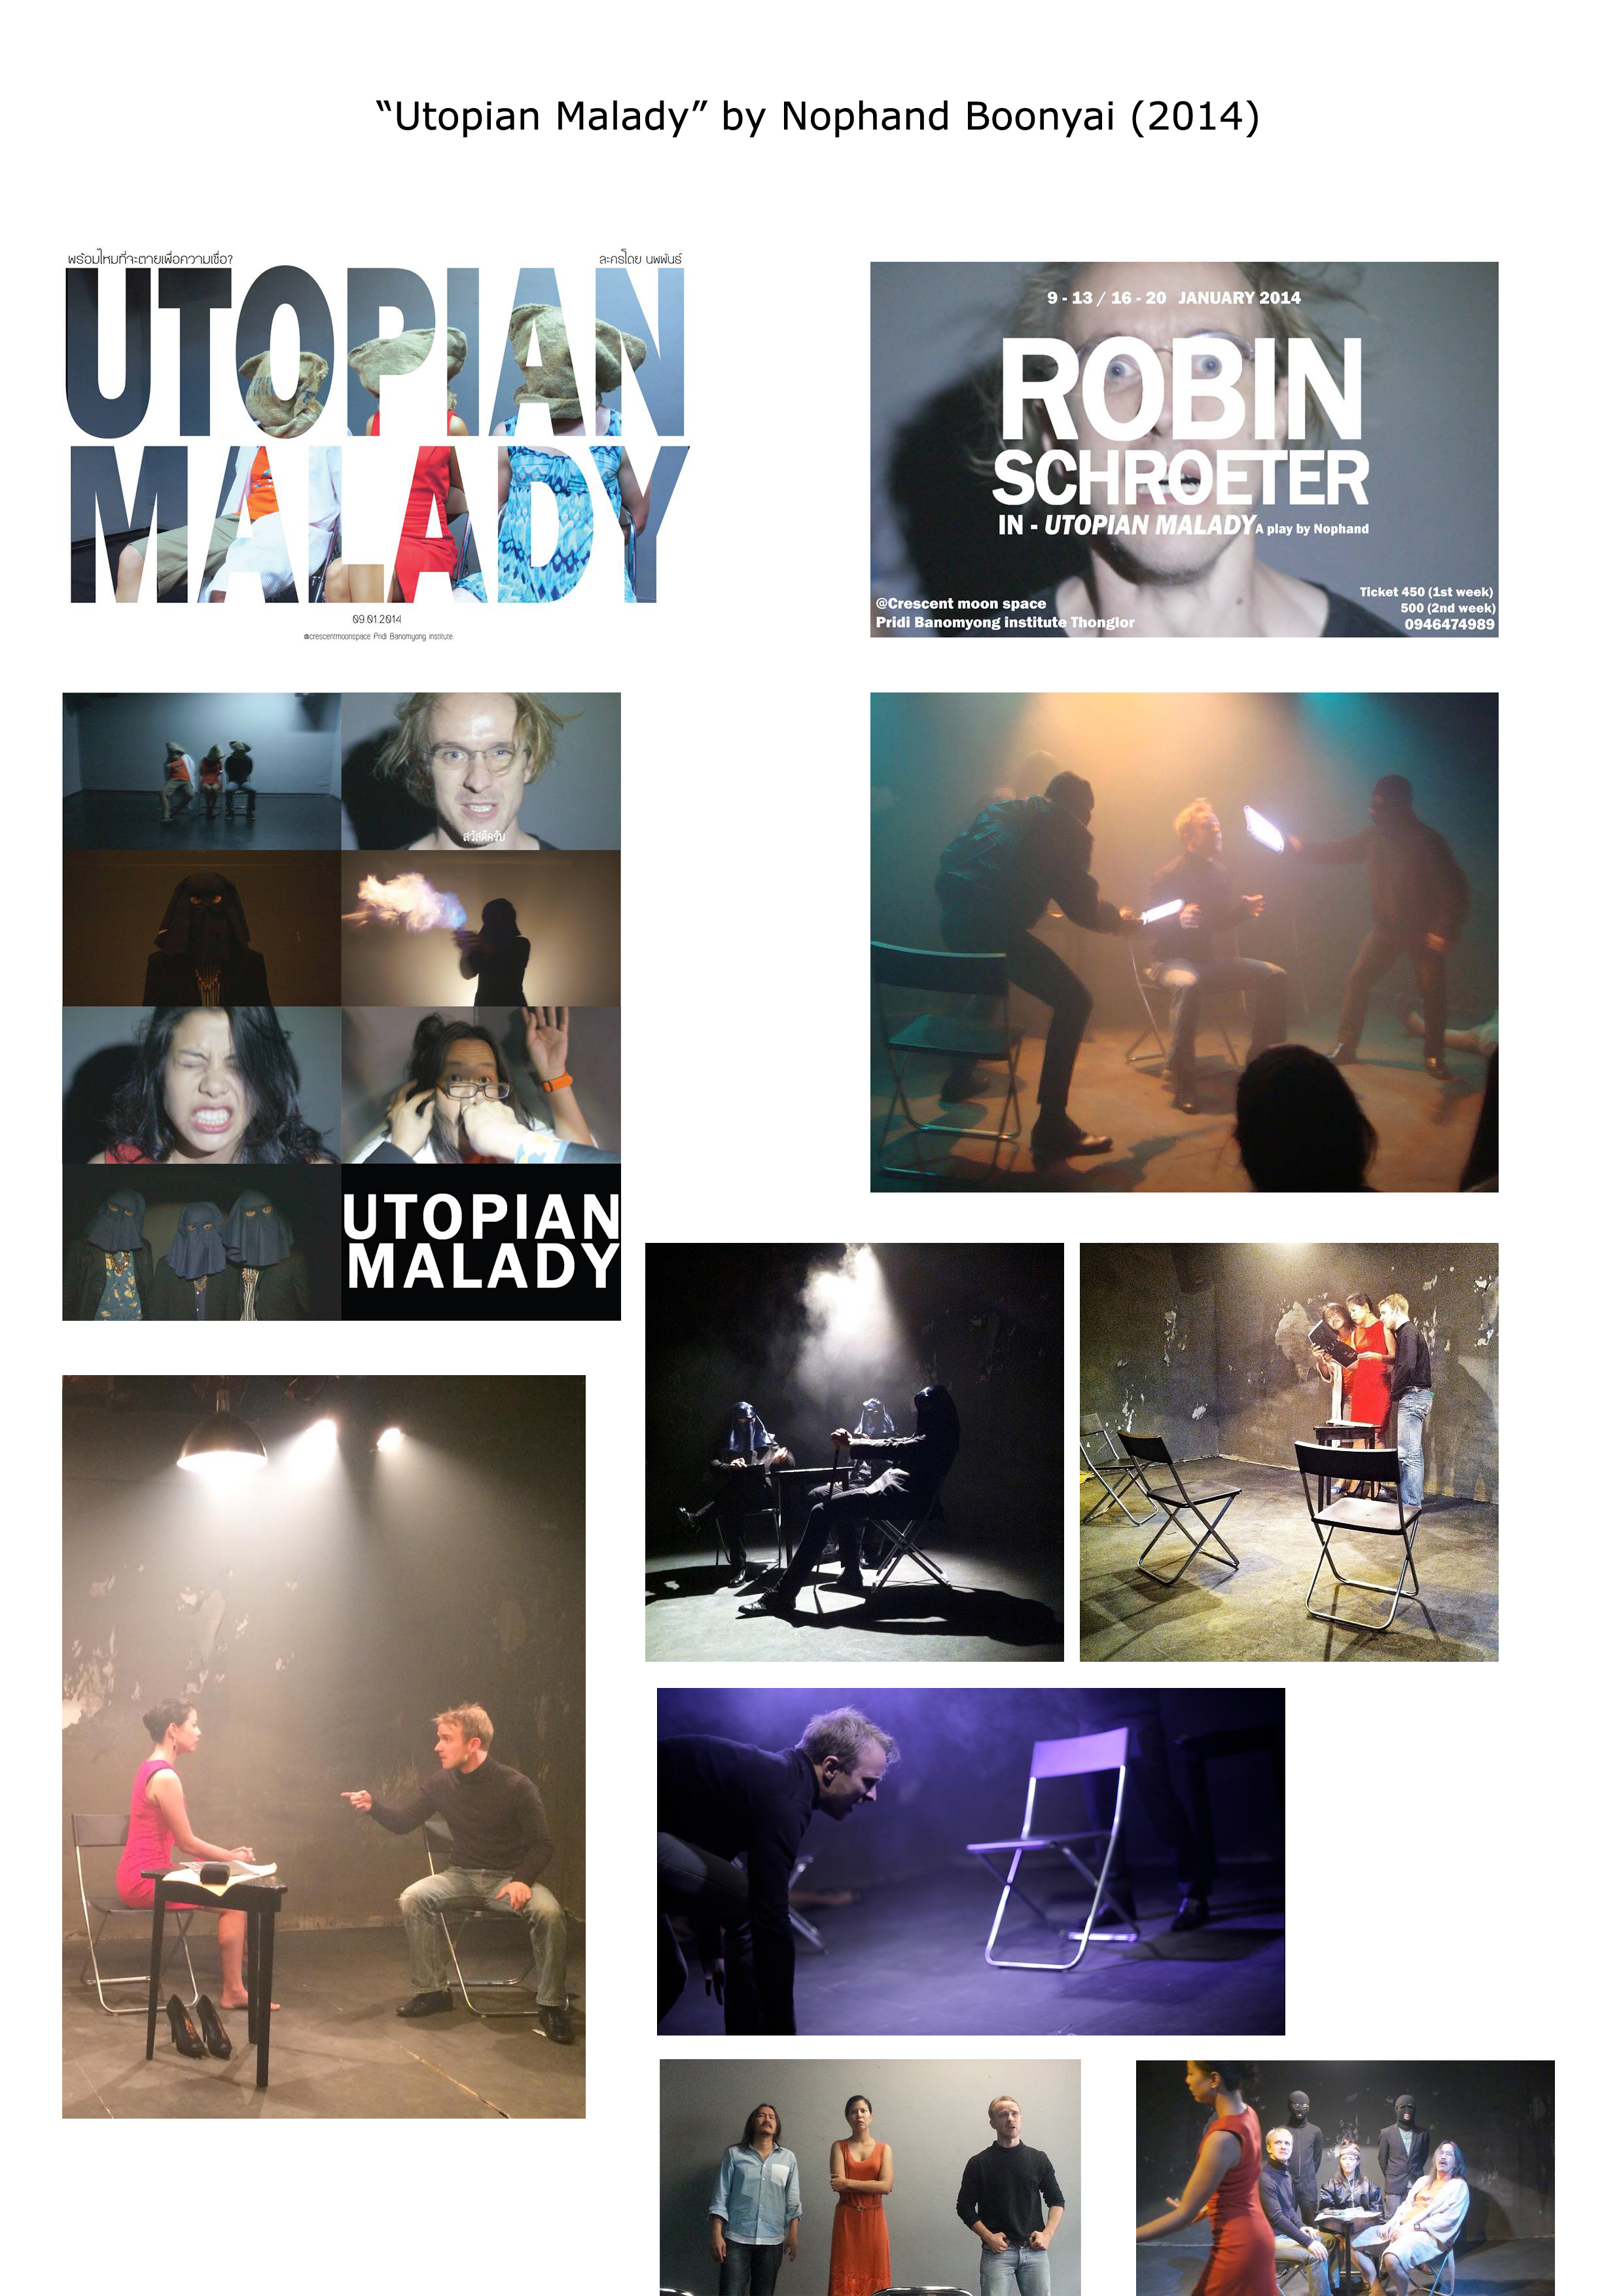 Picture Gallery of Utopian Malady